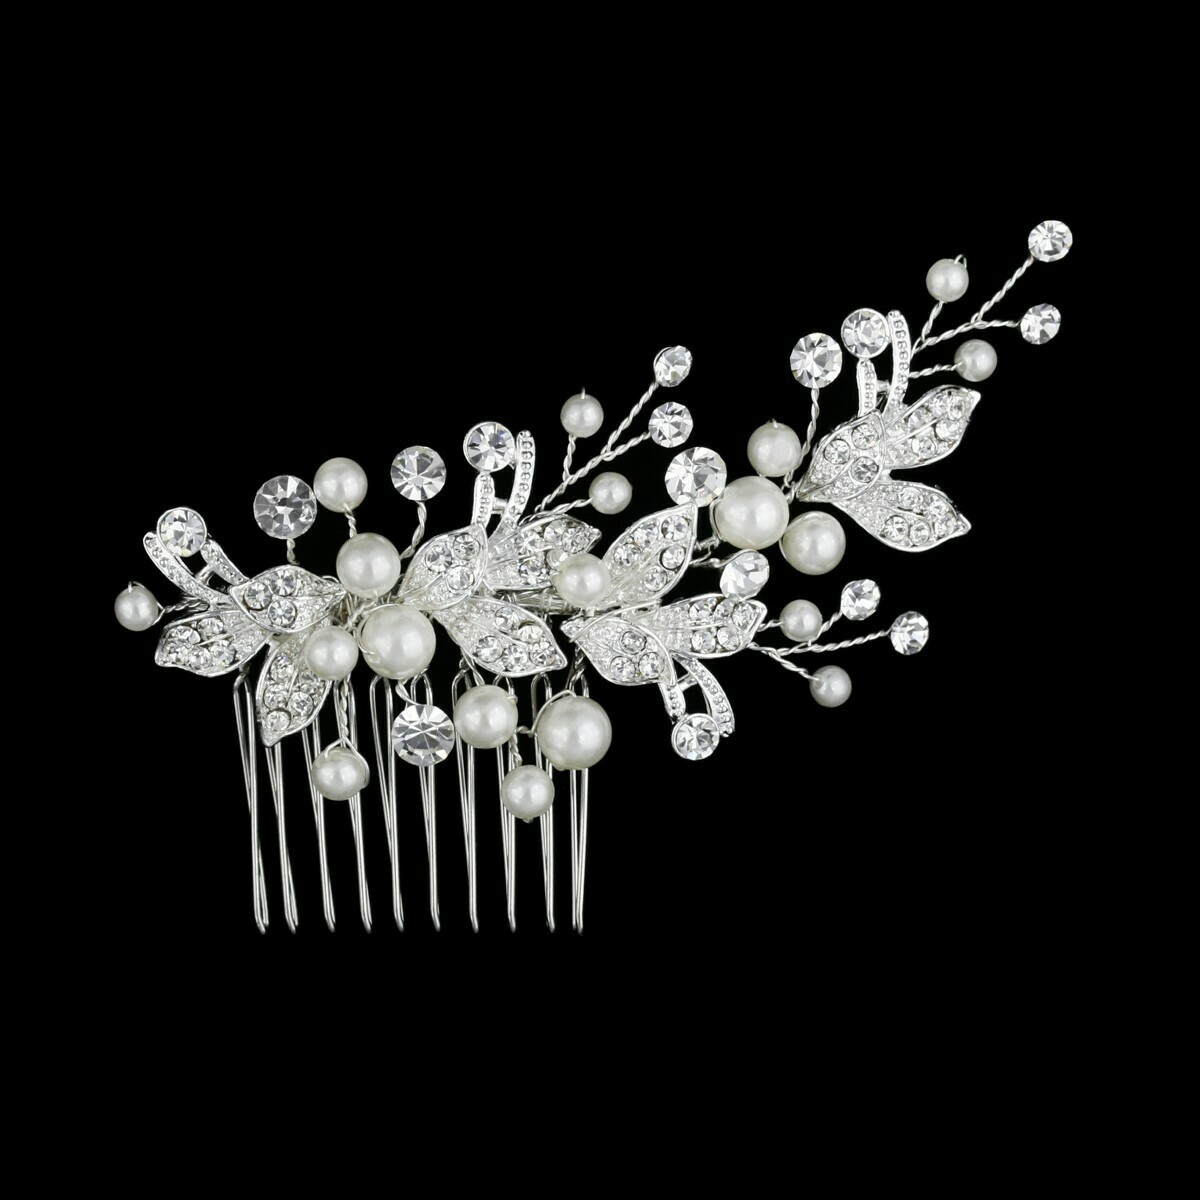 Silver Crystal Pearl Side Bridal Hair Comb